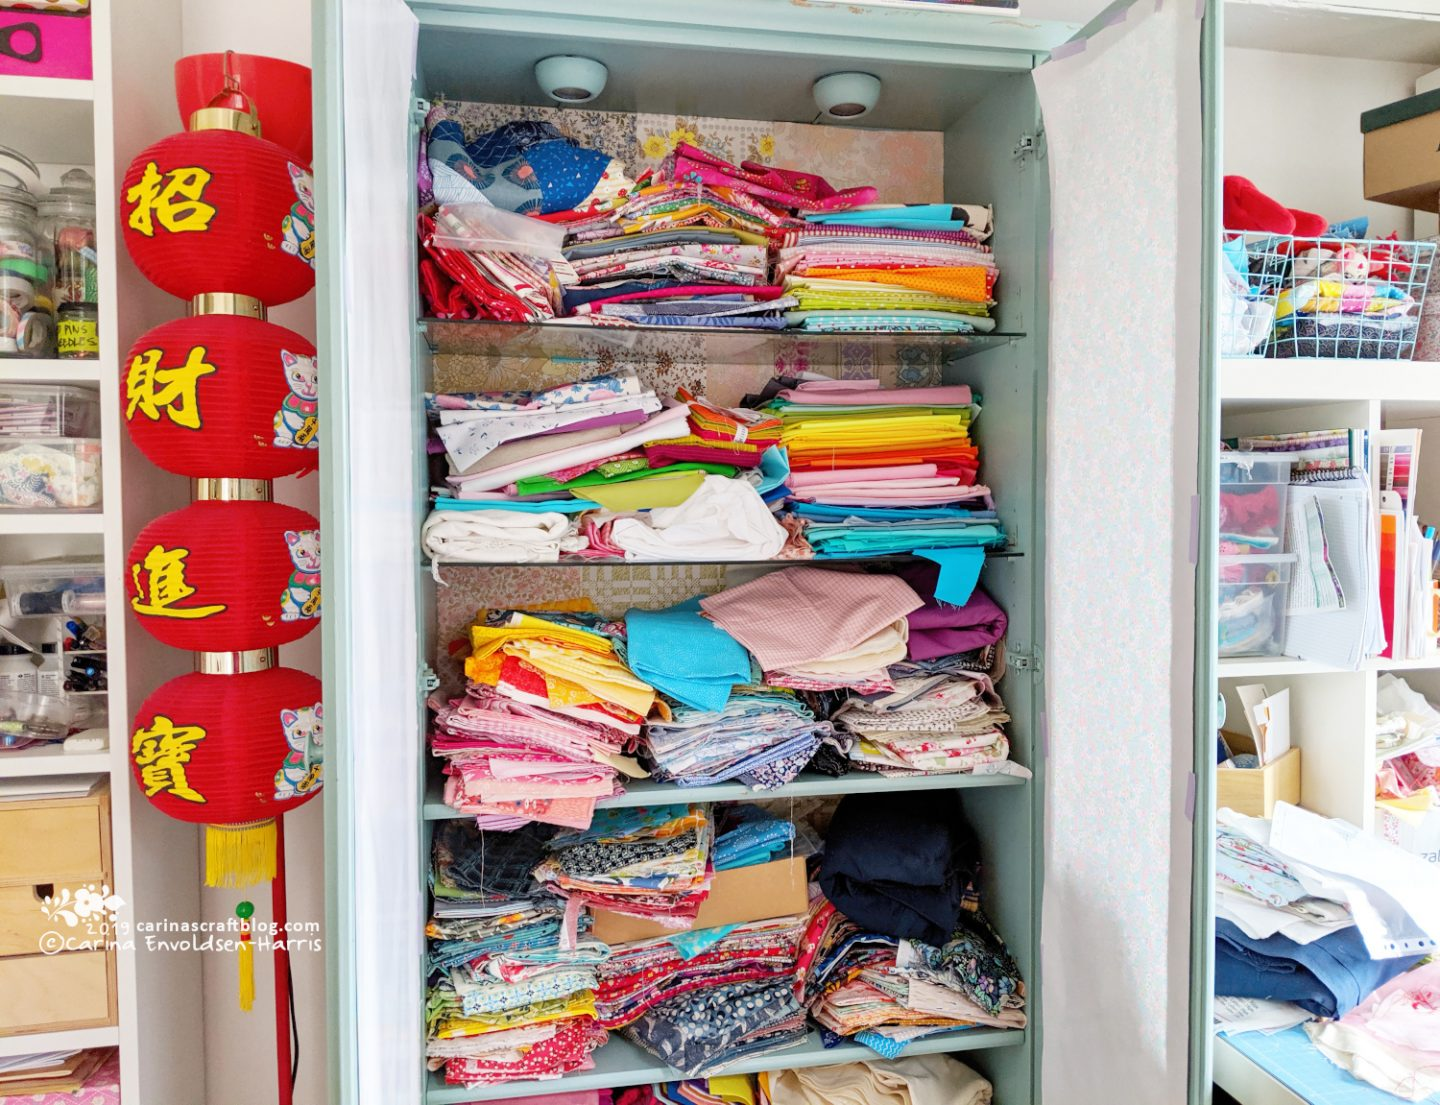 A tall cabinet with glass shelves, doors open so messy stacks of fabric can be seen.